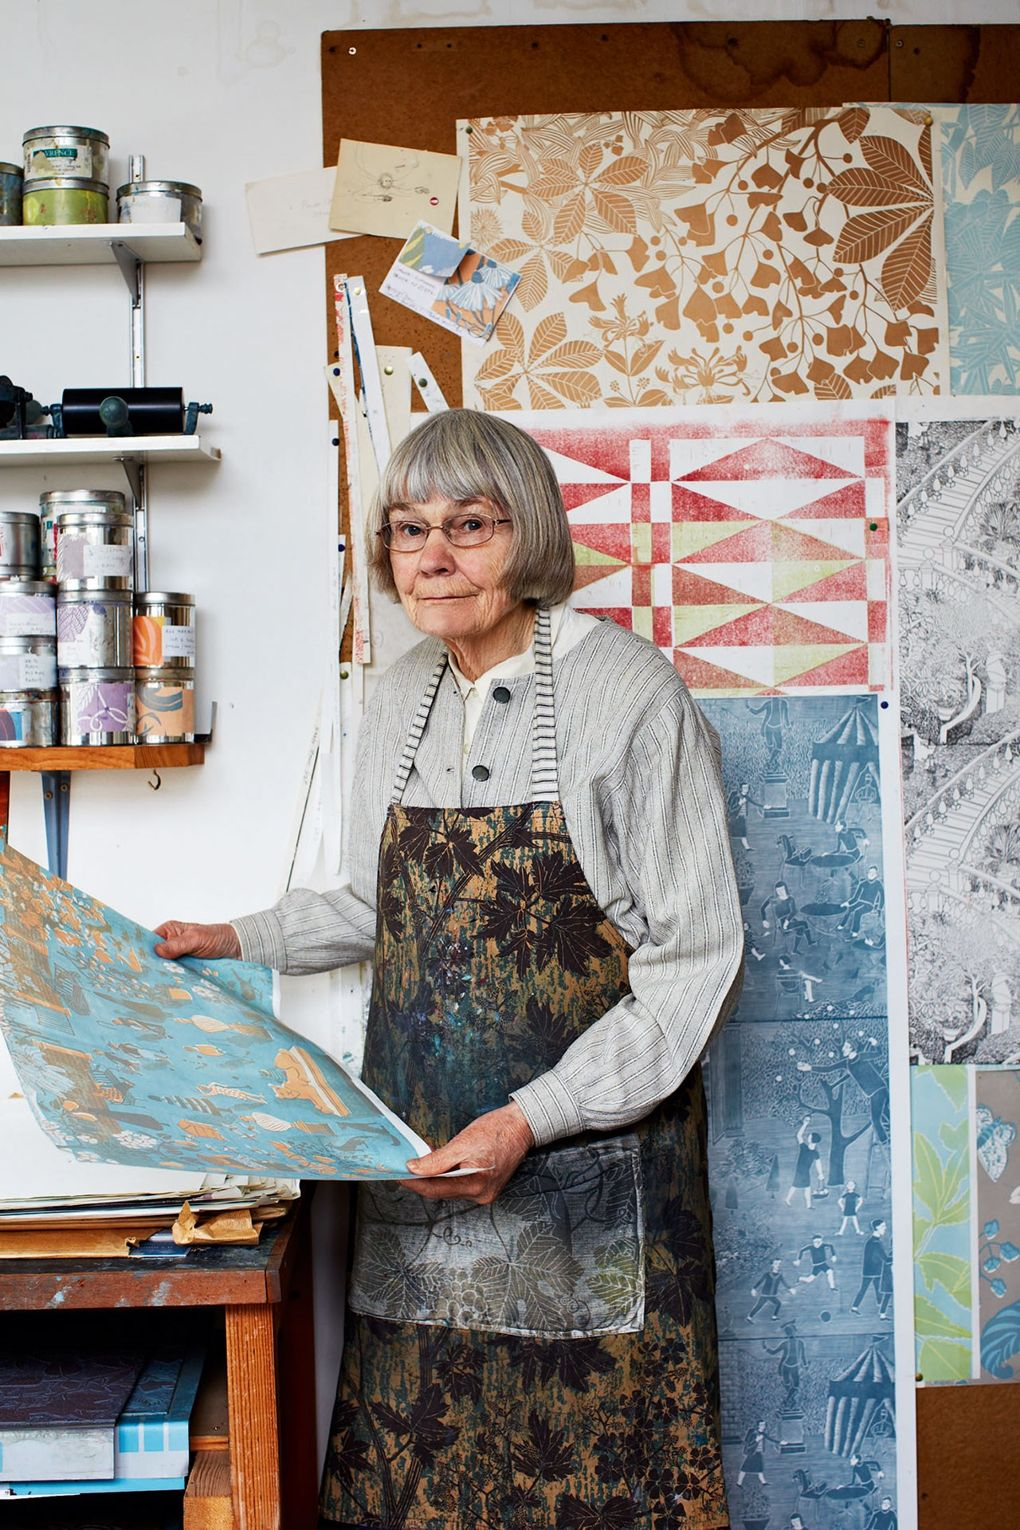 marthe armitage in her studio | via: chatham st. house